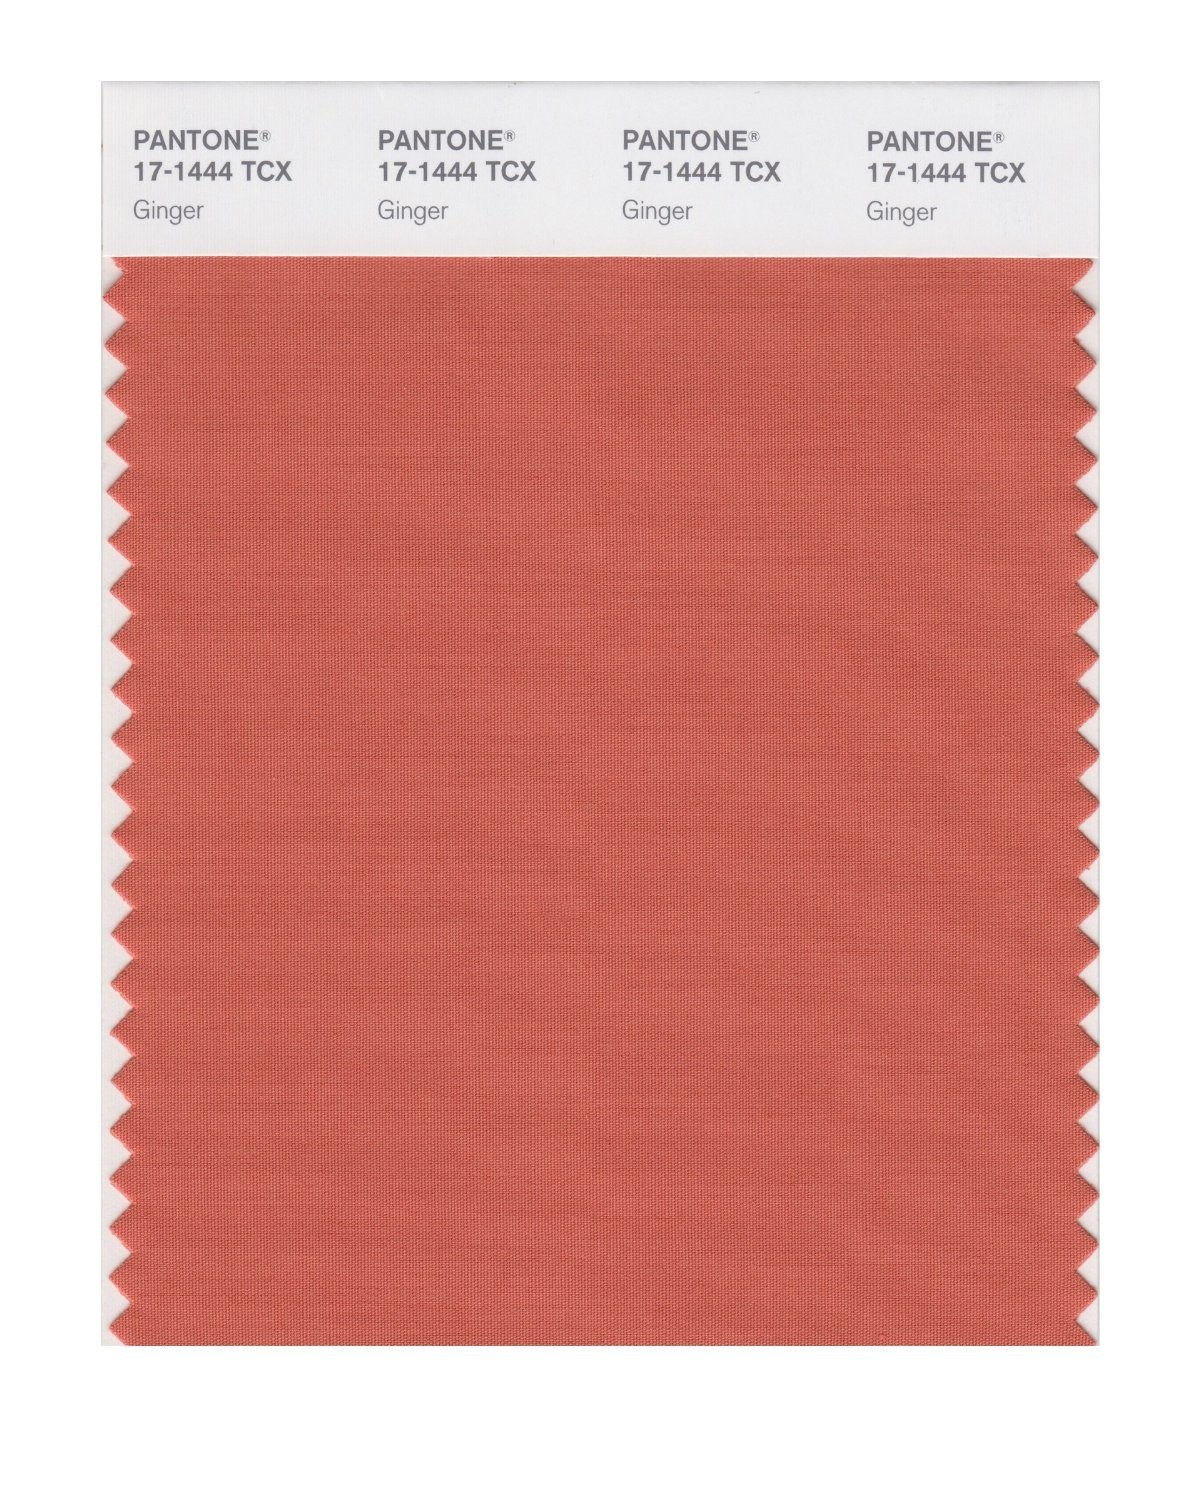 Pantone 17-1444 TCX Swatch Card Ginger